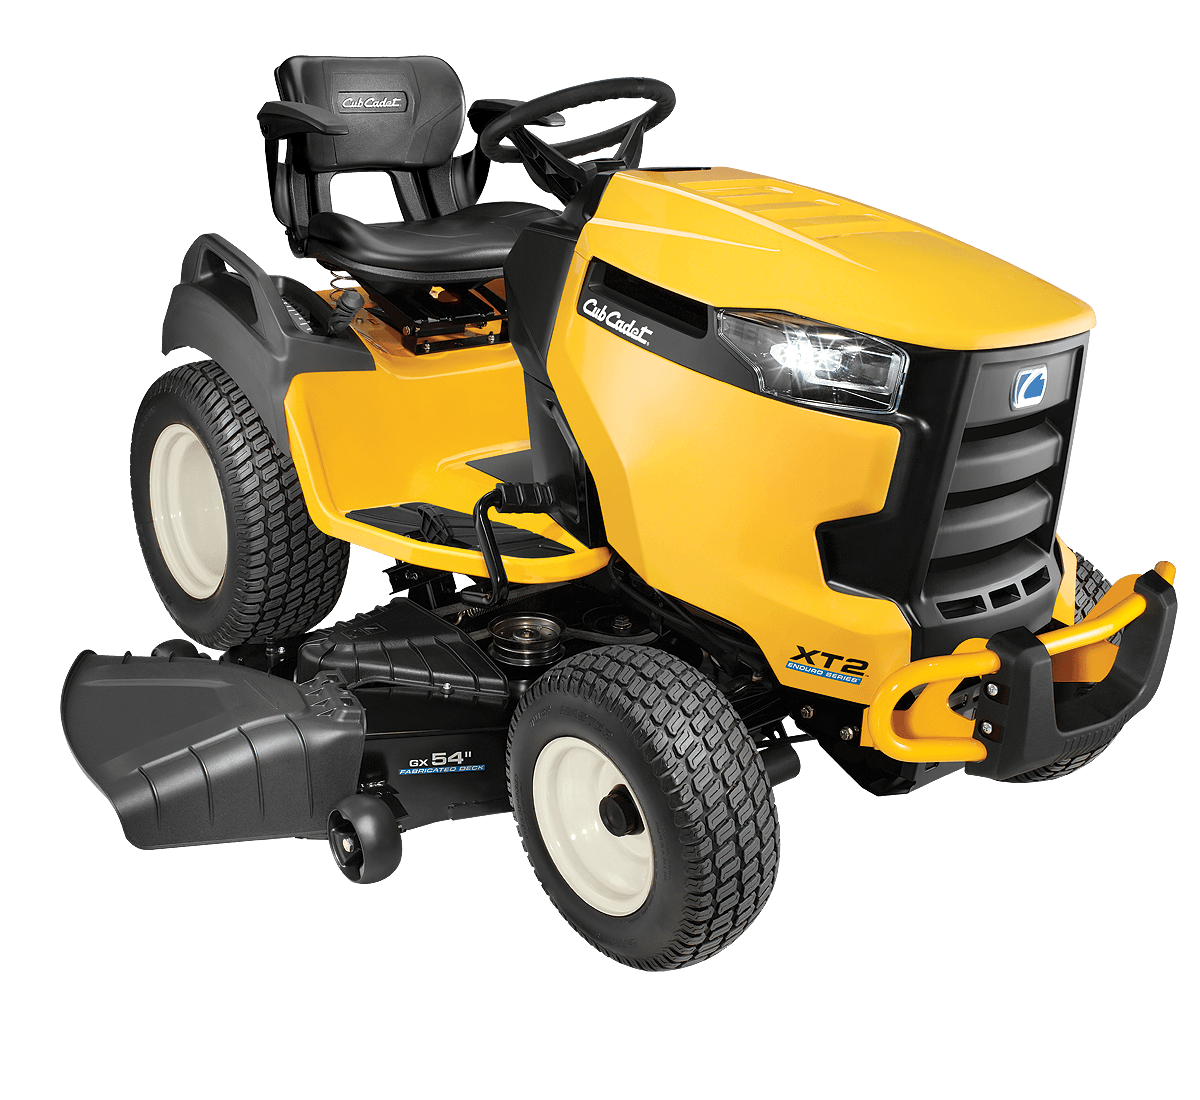 New 2017 Cub Cadet XT2 GX 54 in. Lawn Mowers in AULANDER, NC